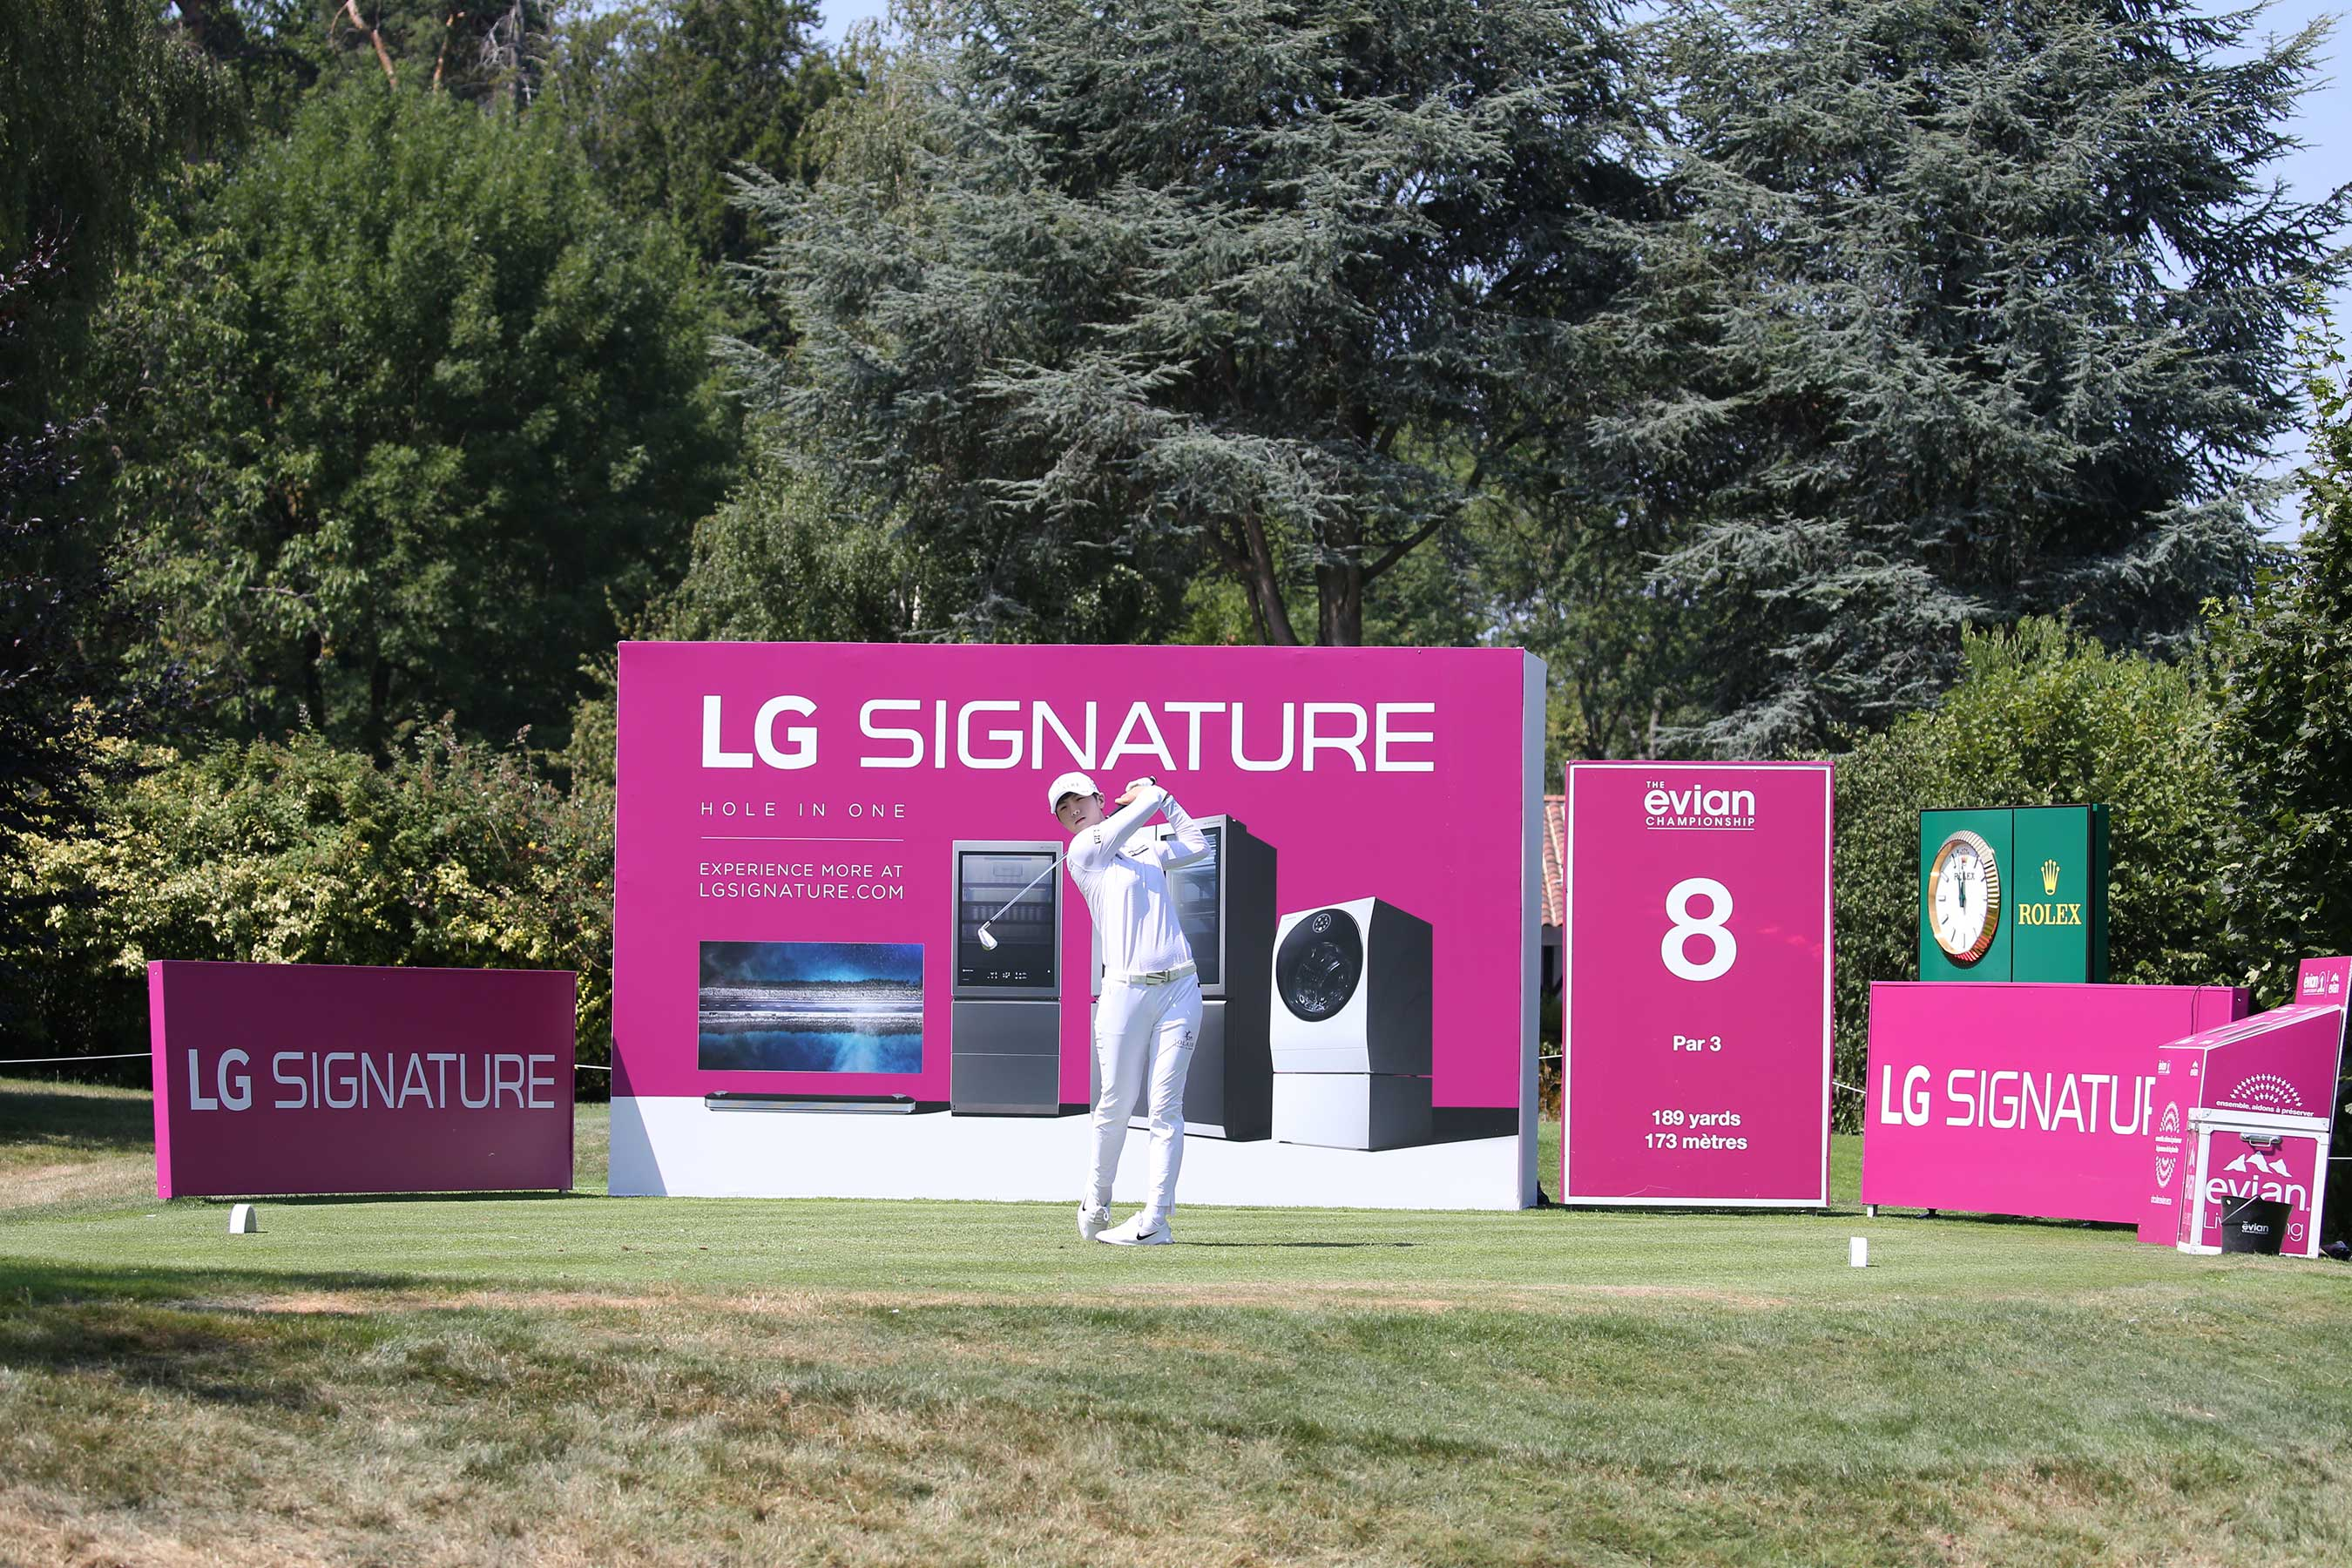 Renowned golfer Park Sung-hyun taking her shot at the LG SIGNATURE Hole at the 2019 Evian Championship